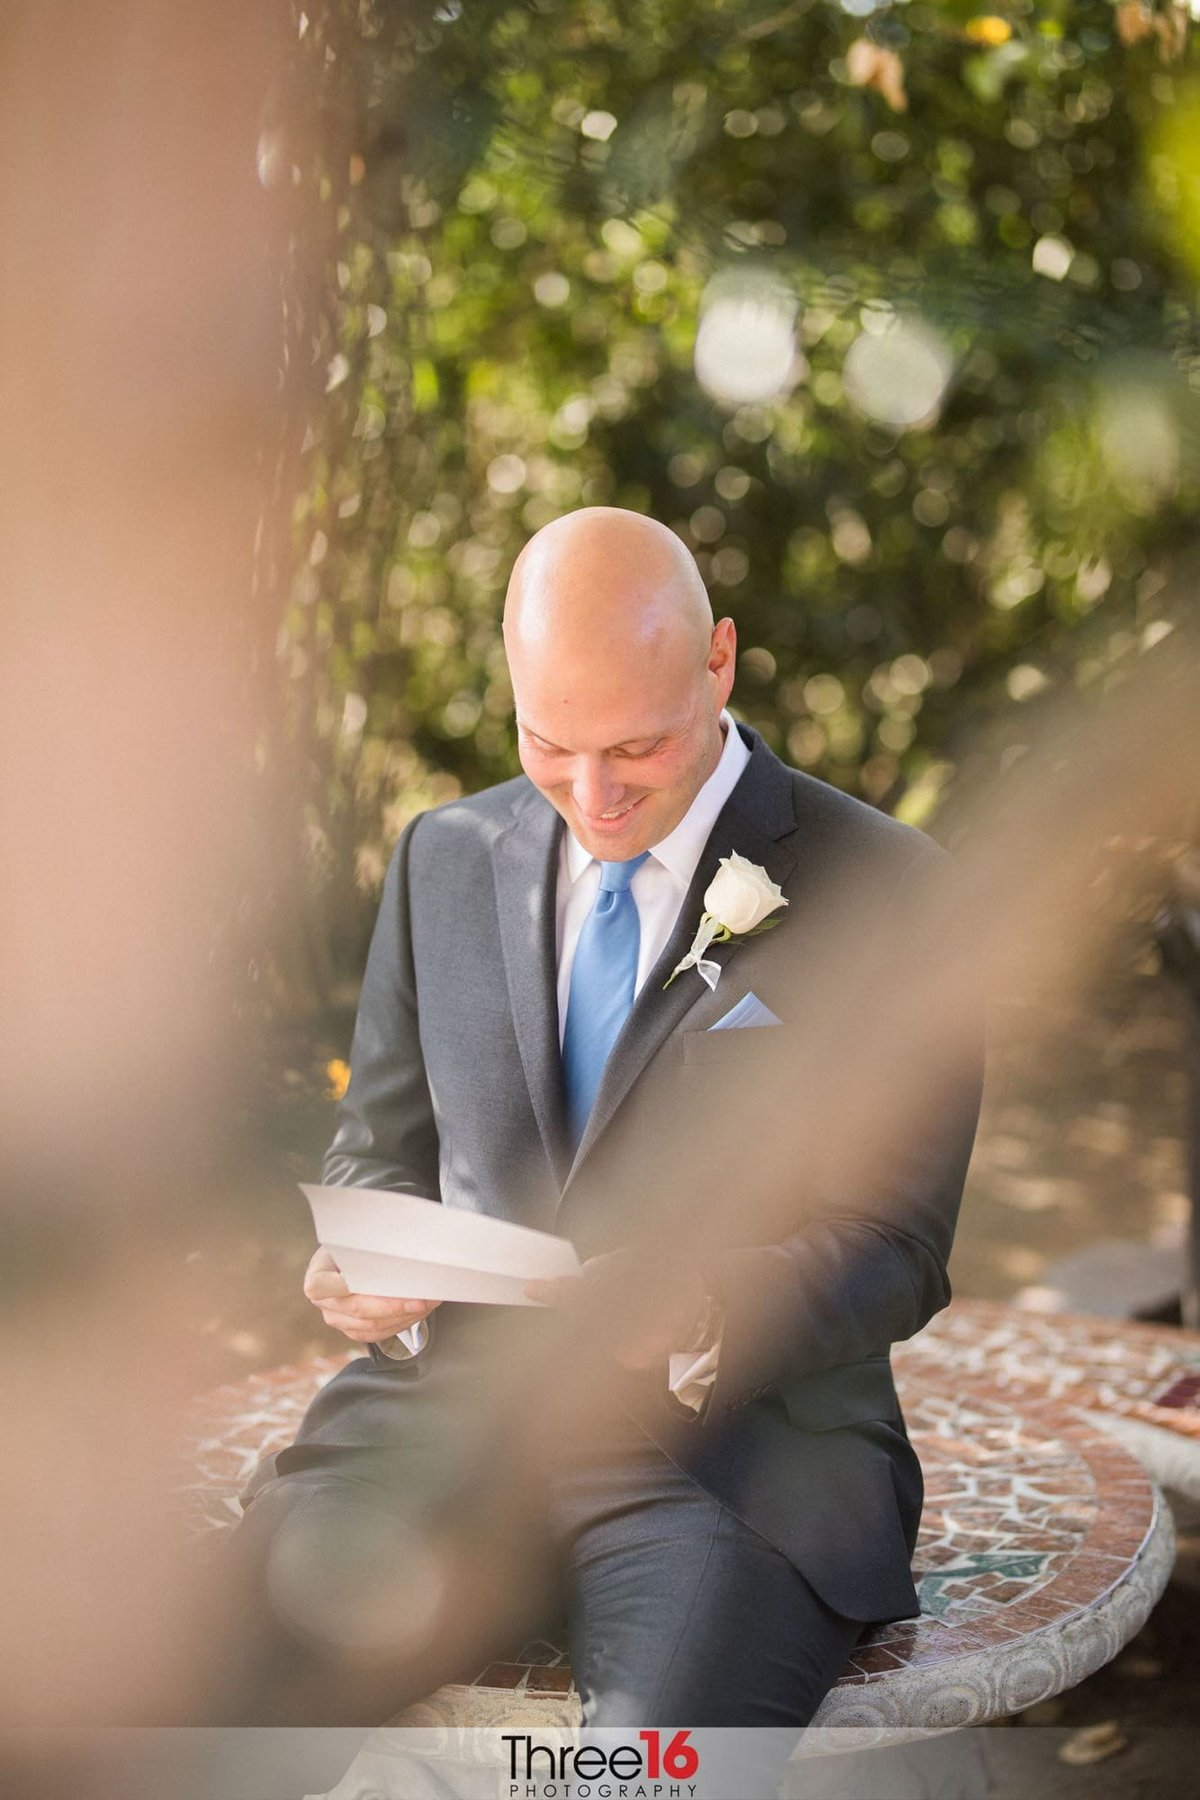 Groom reading a note from his Bride to be